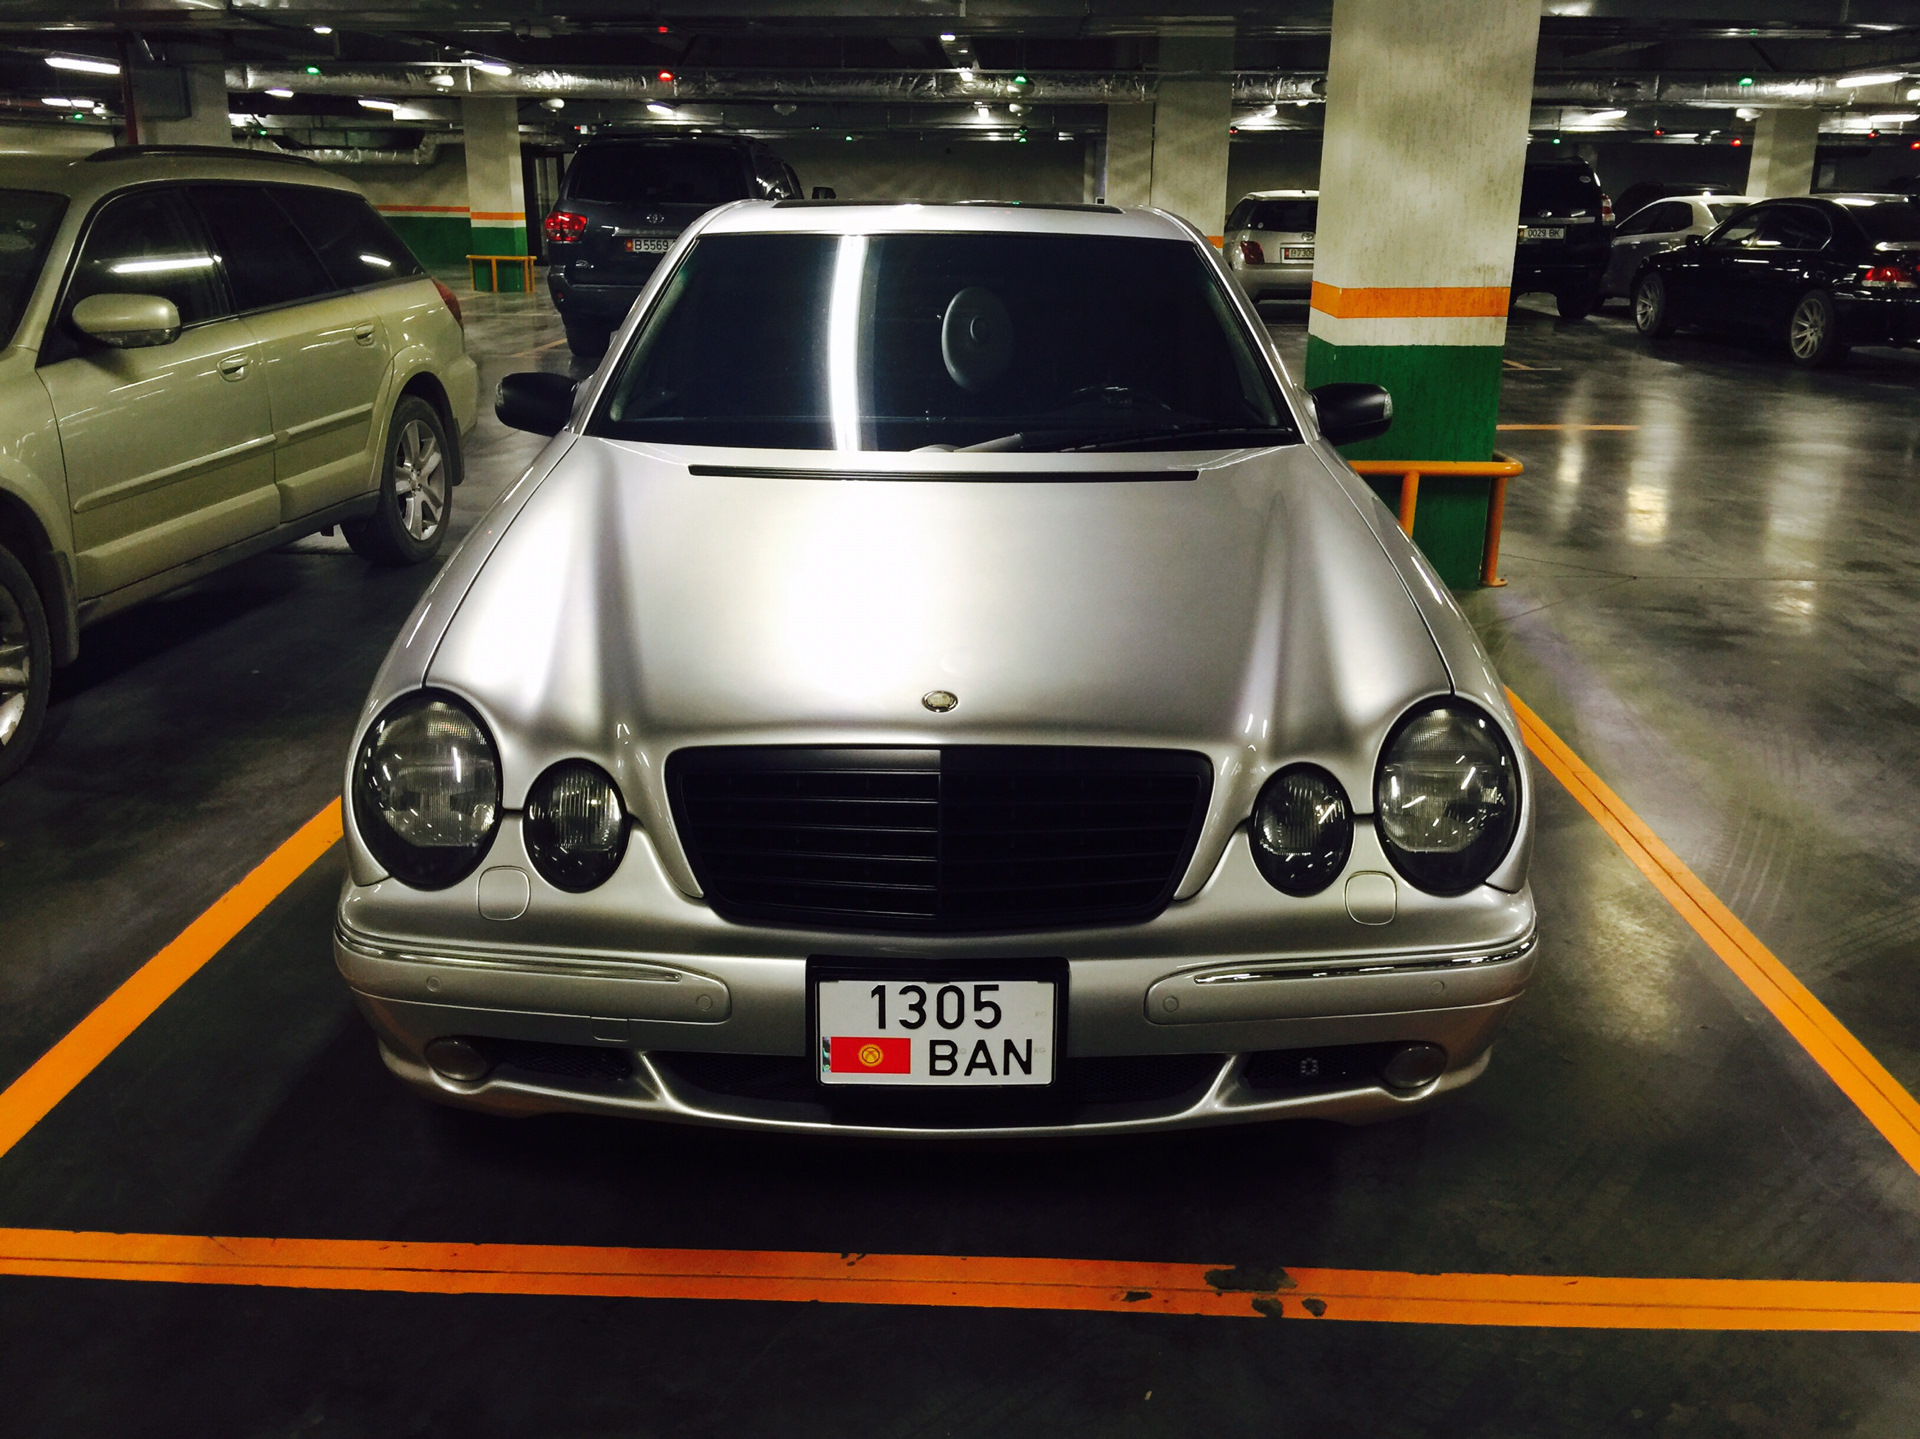 8e498c1s-1920 Interesting Info About 2001 E55 Amg with Terrific Images Cars Review